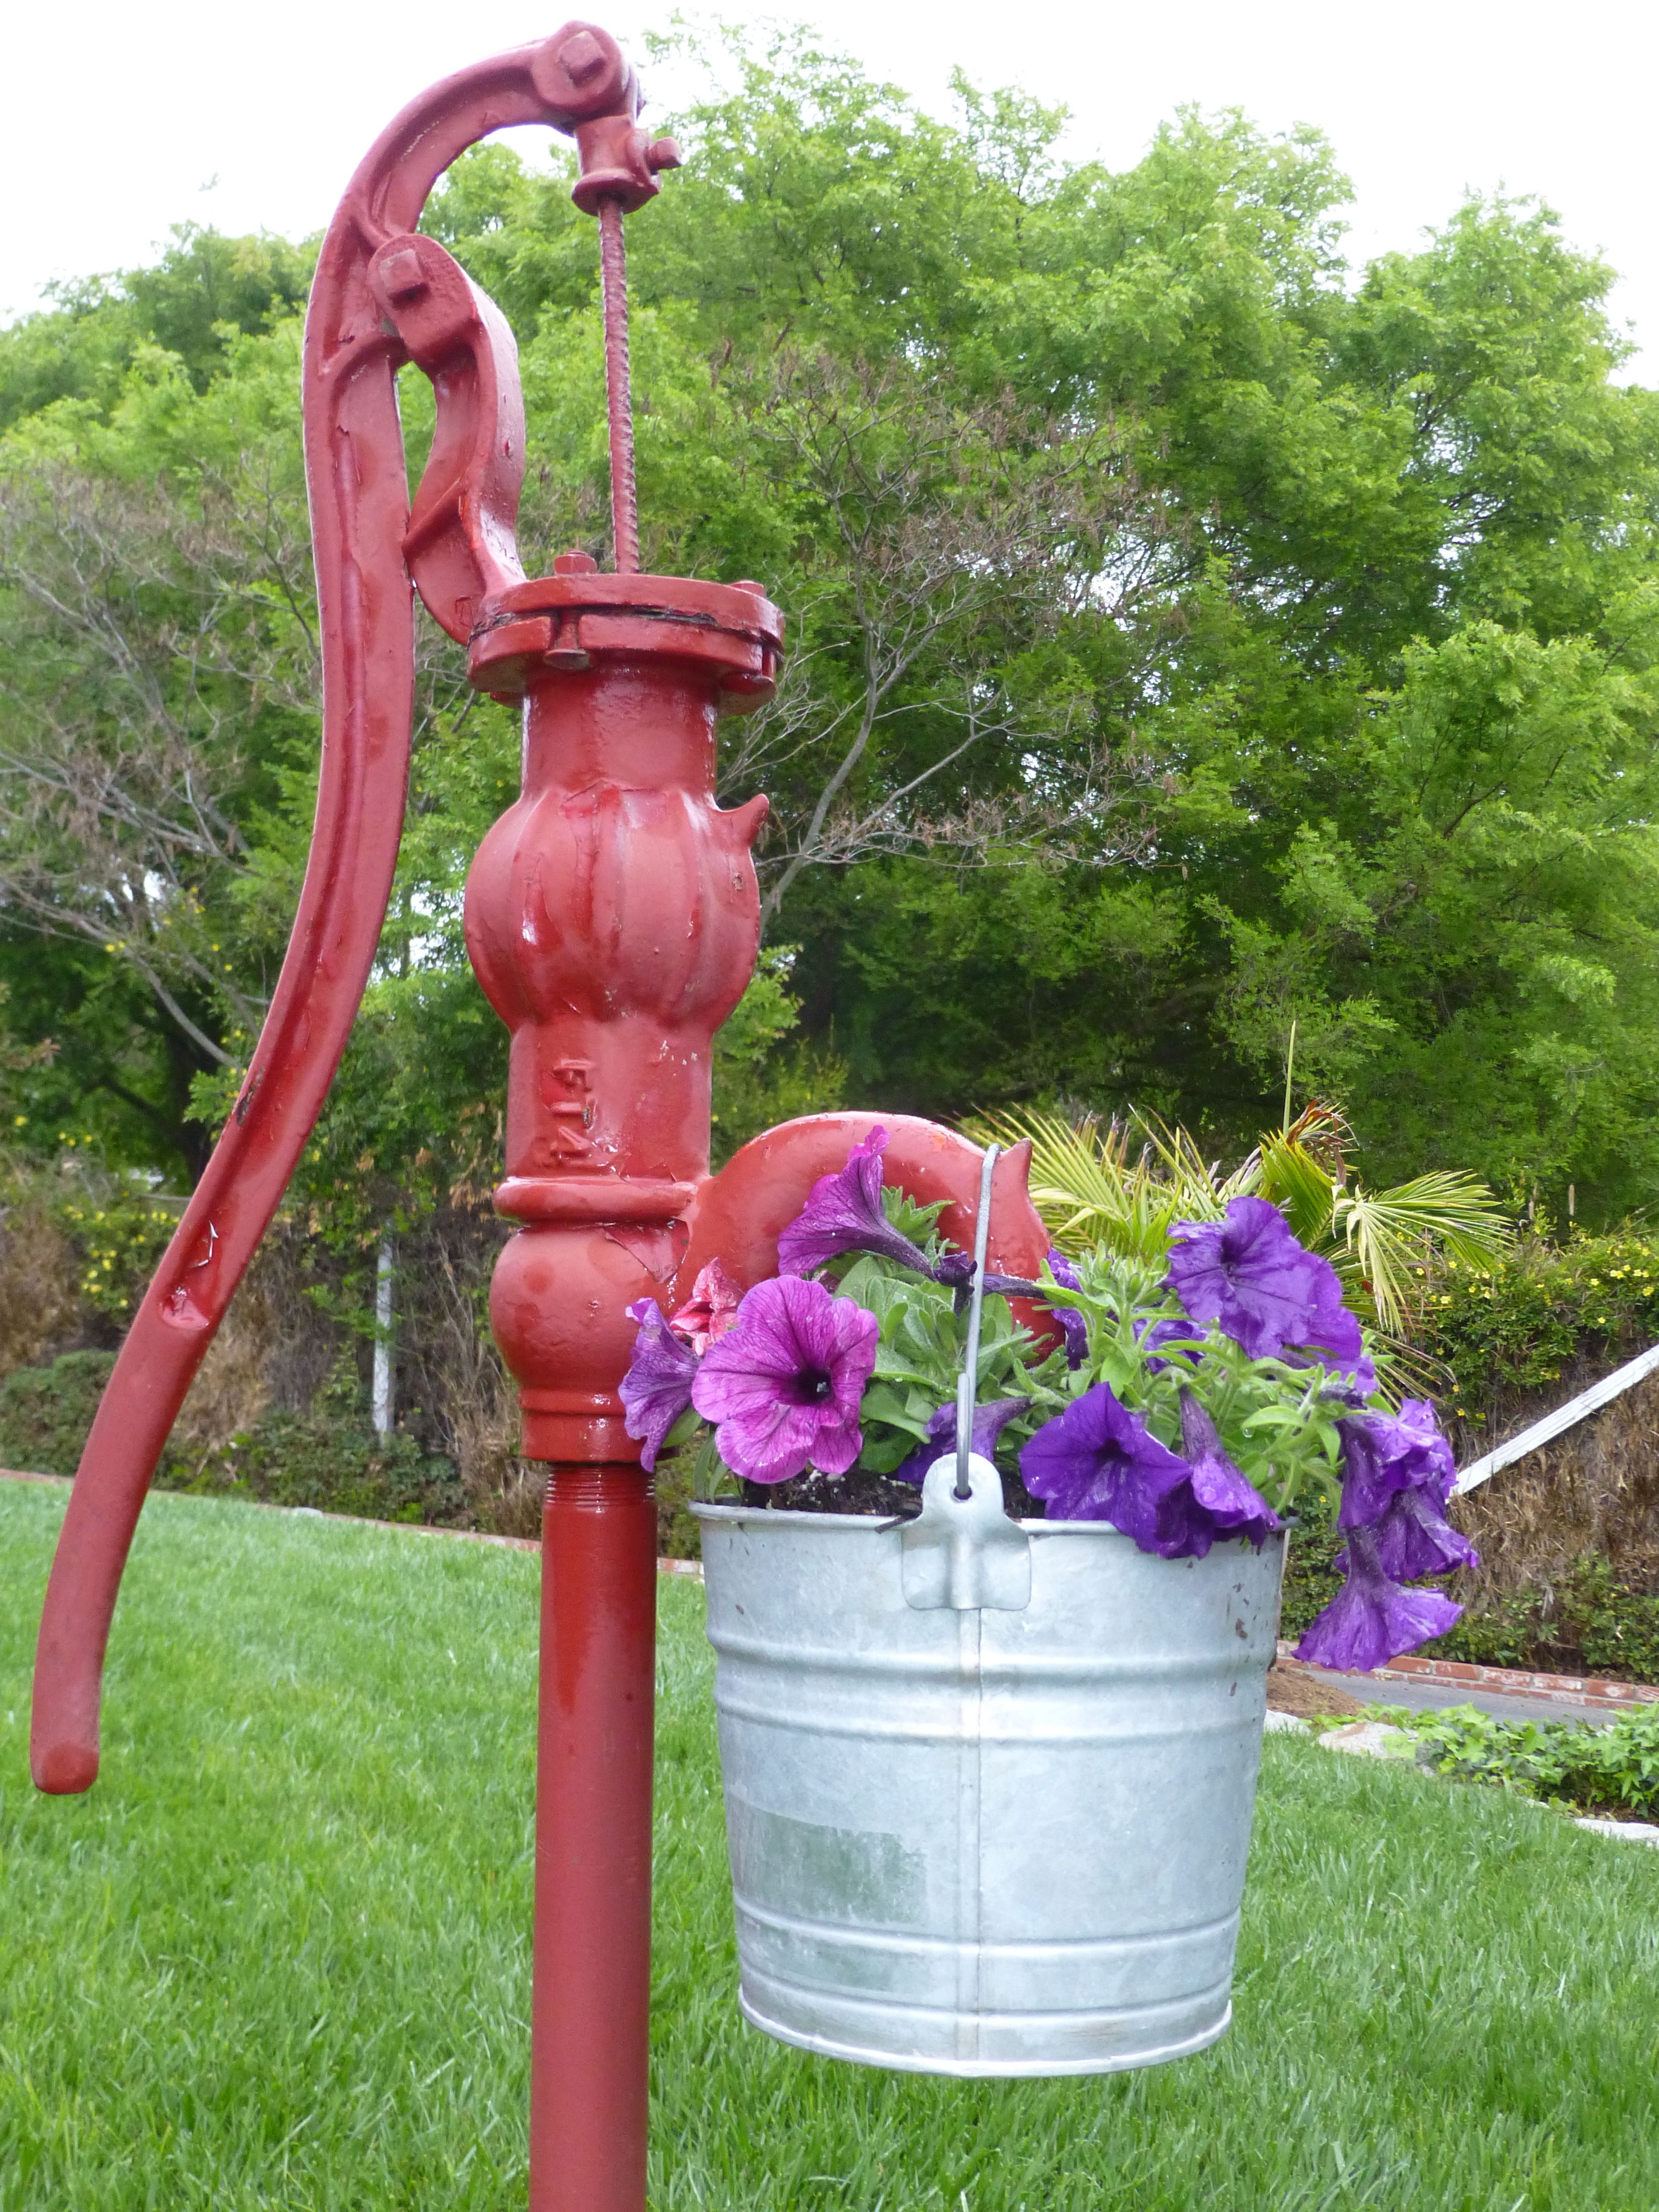 Pin By Cheryl Sawatzky Allen On Outside Old Water Pumps Hand Water Pump Water Pumps